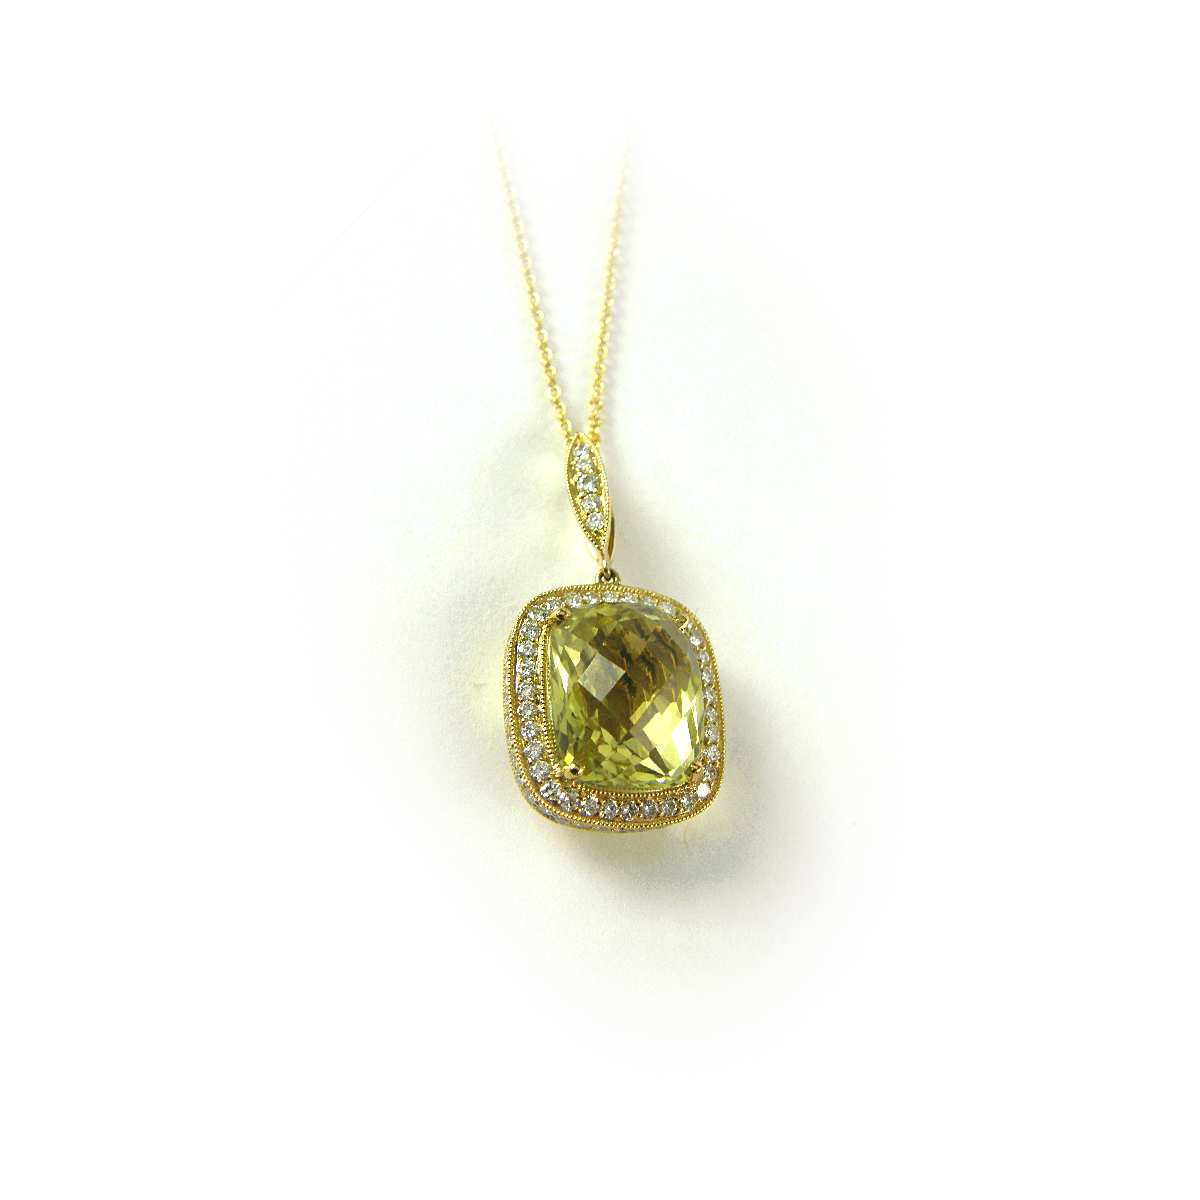 18 Karat Yellow Gold Lime Quartz and Diamond Pendant Necklace